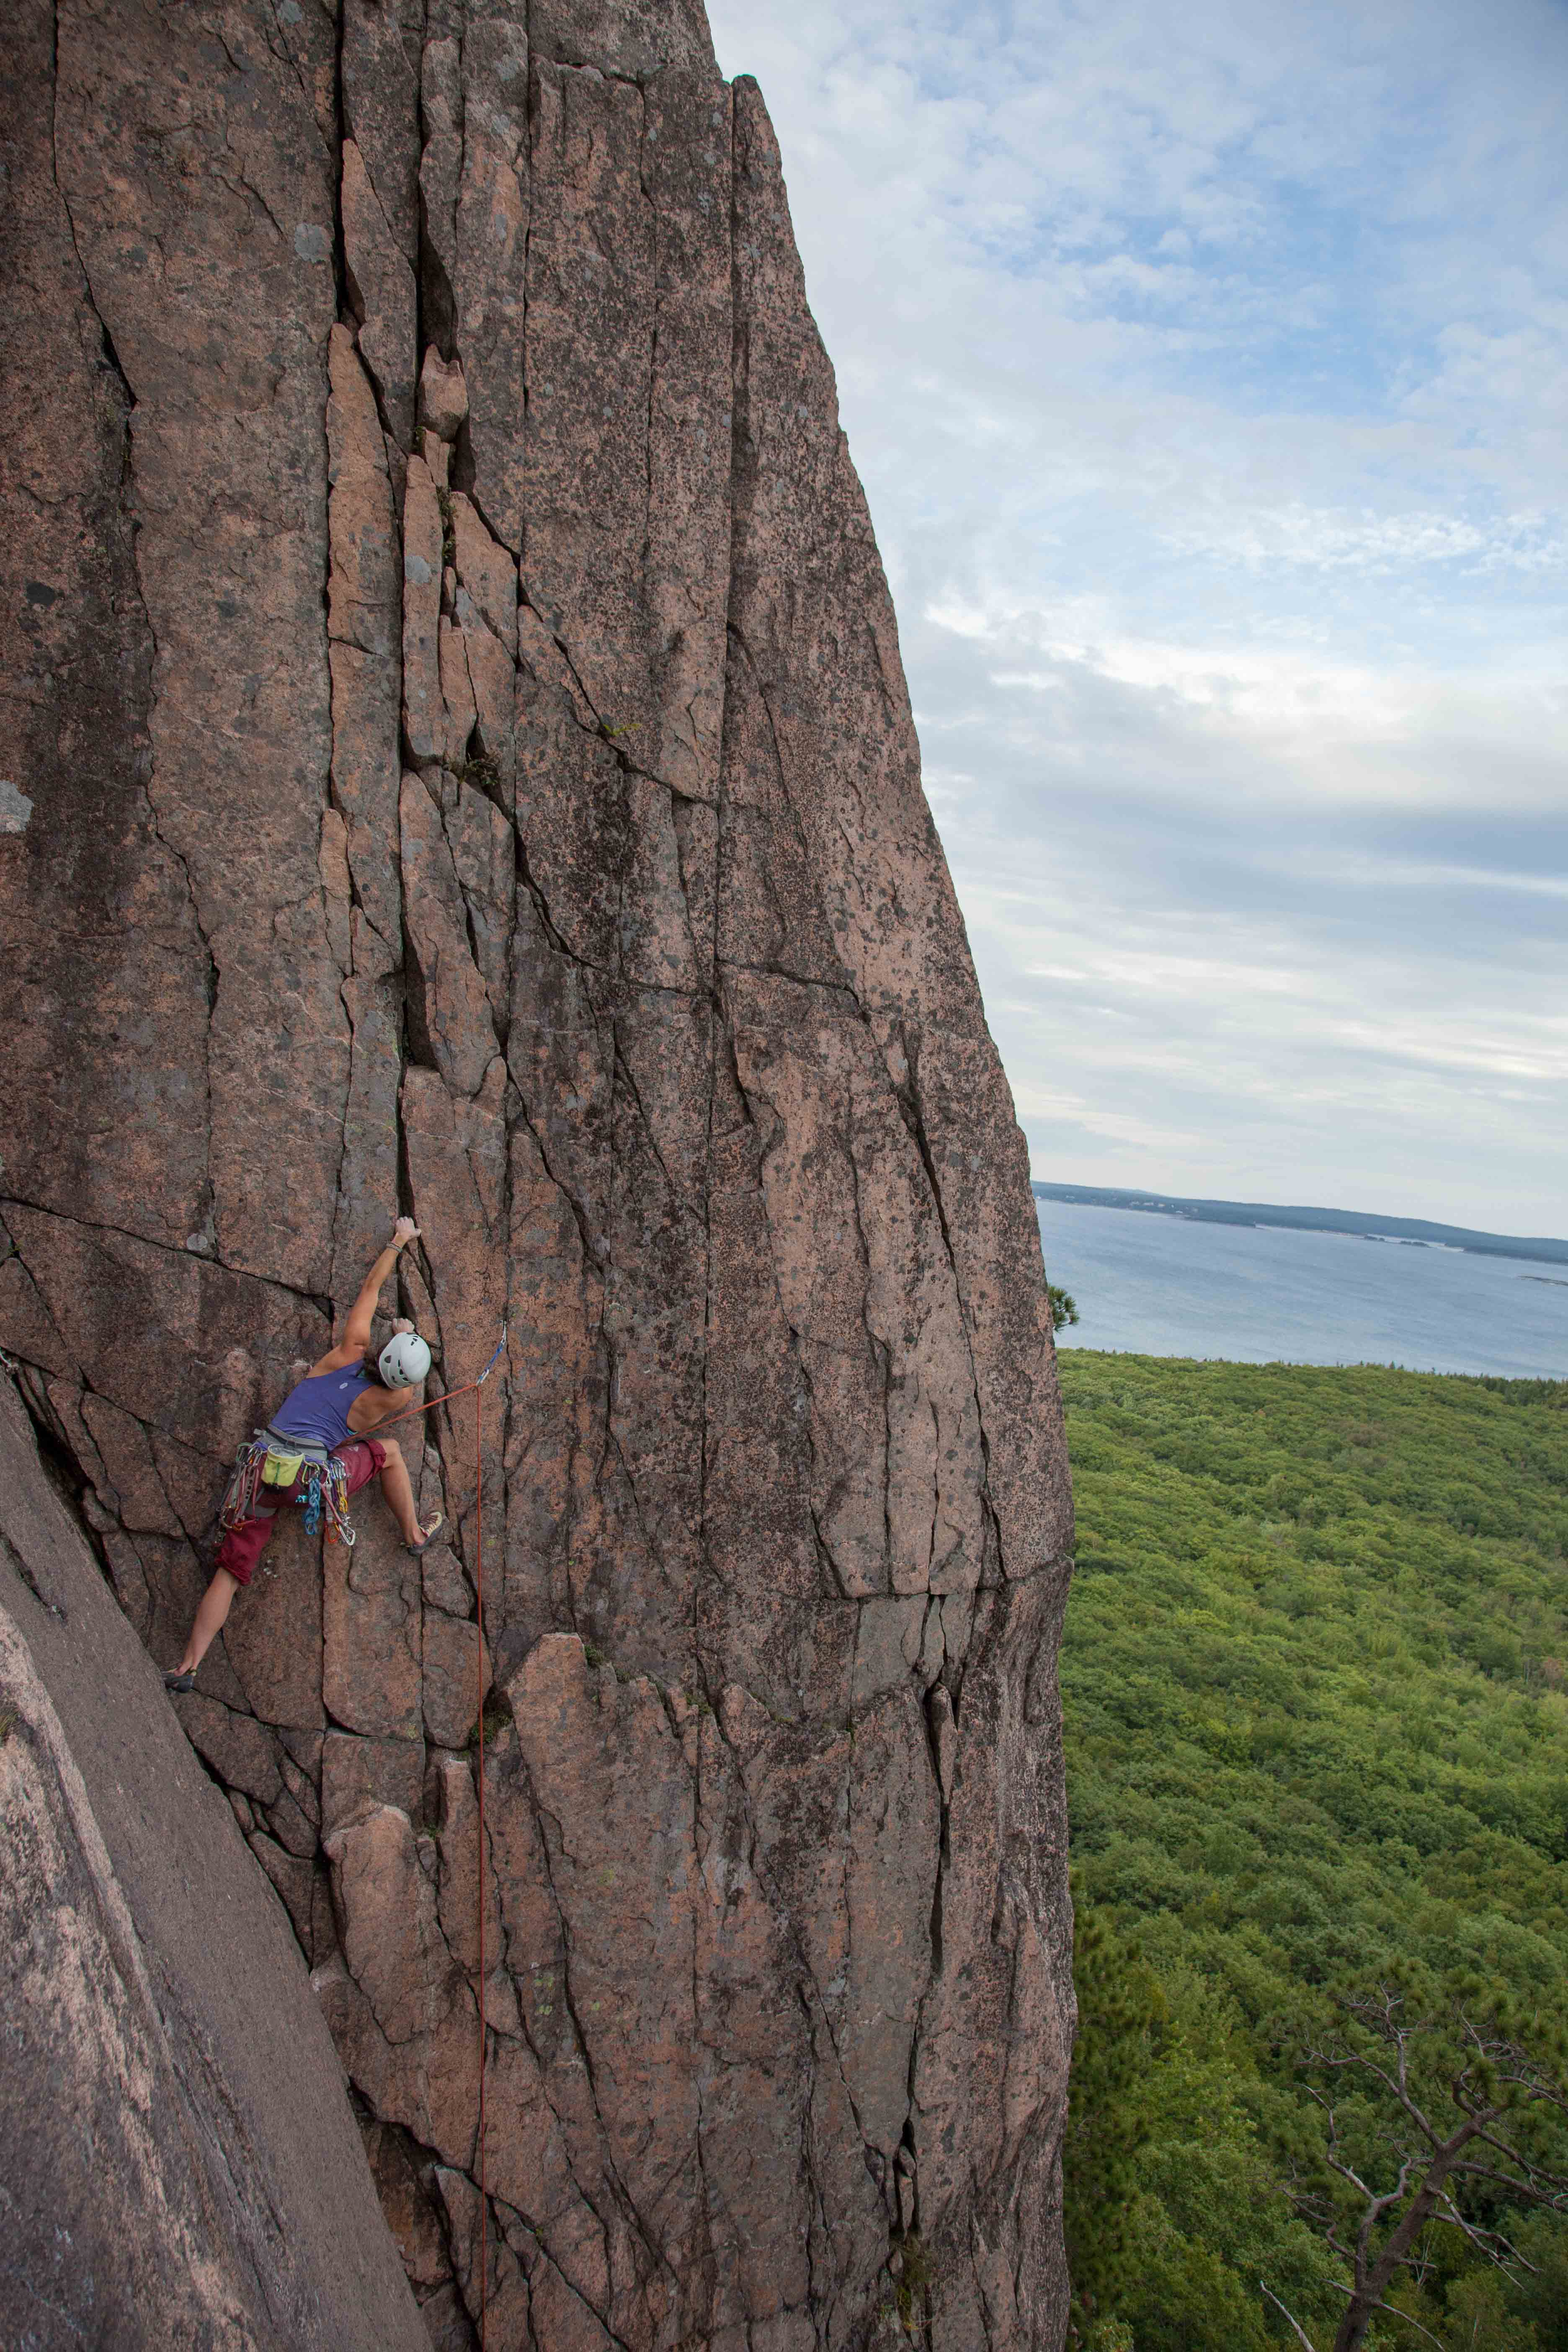 Doing laps on the Acadia ultra-classic, Green Mountain Breakdown (5.9+). photo by Sasha Turrentine.